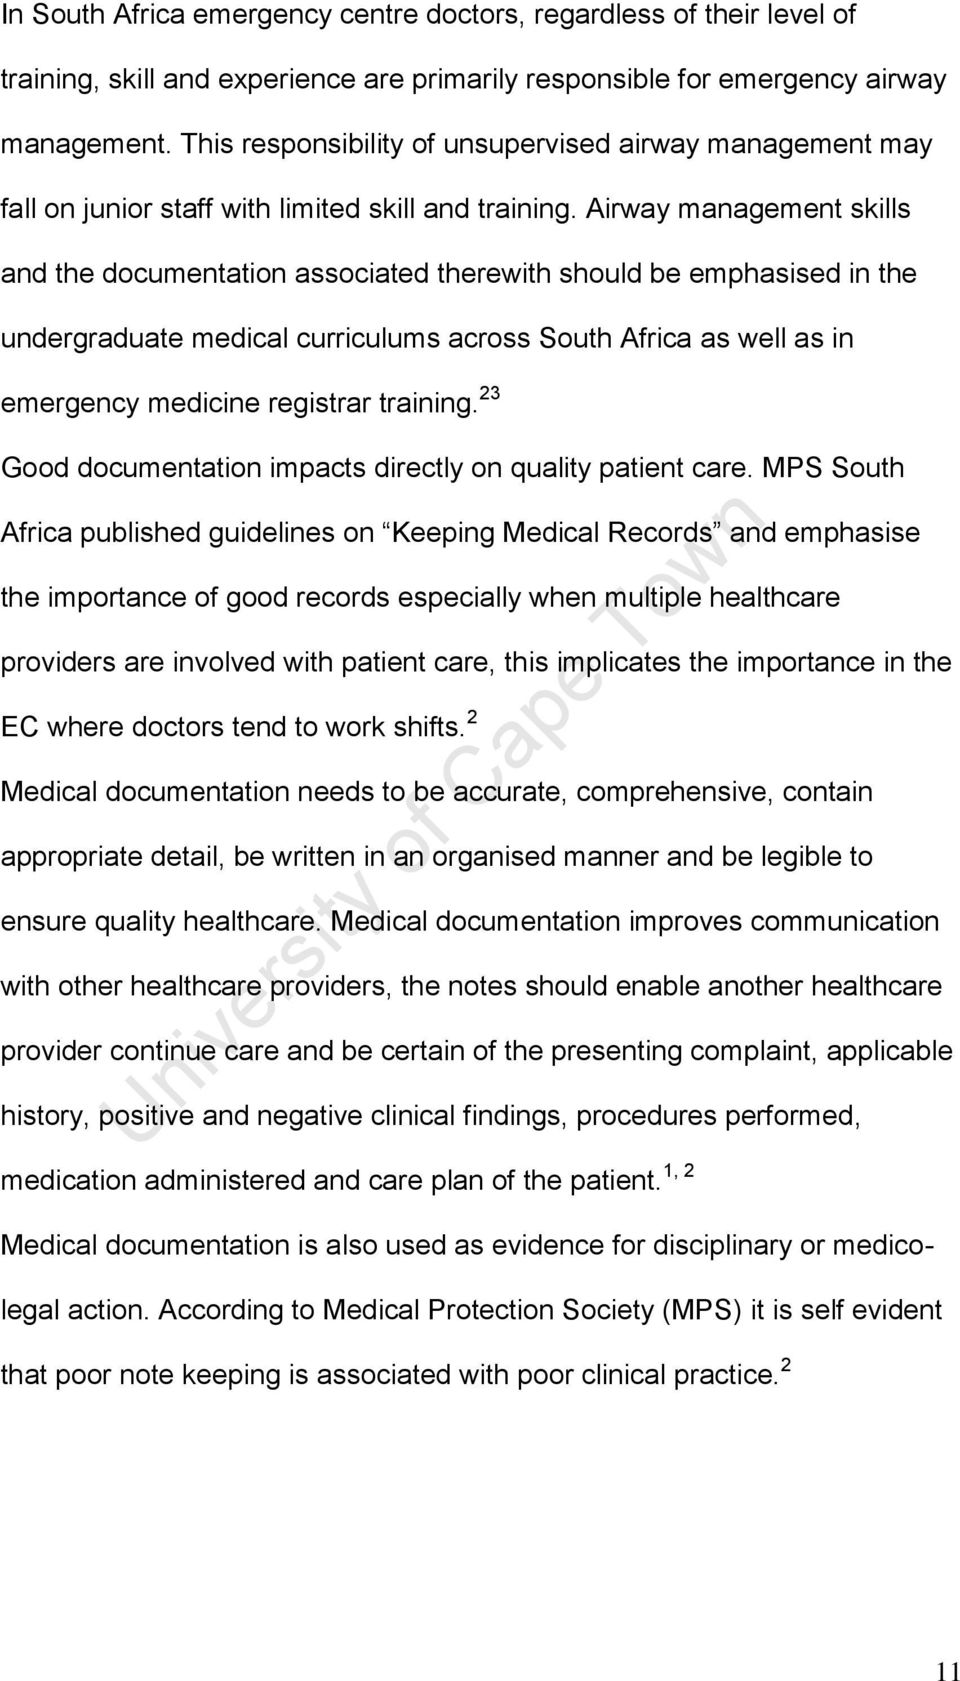 Airway management skills and the documentation associated therewith should be emphasised in the undergraduate medical curriculums across South Africa as well as in emergency medicine registrar